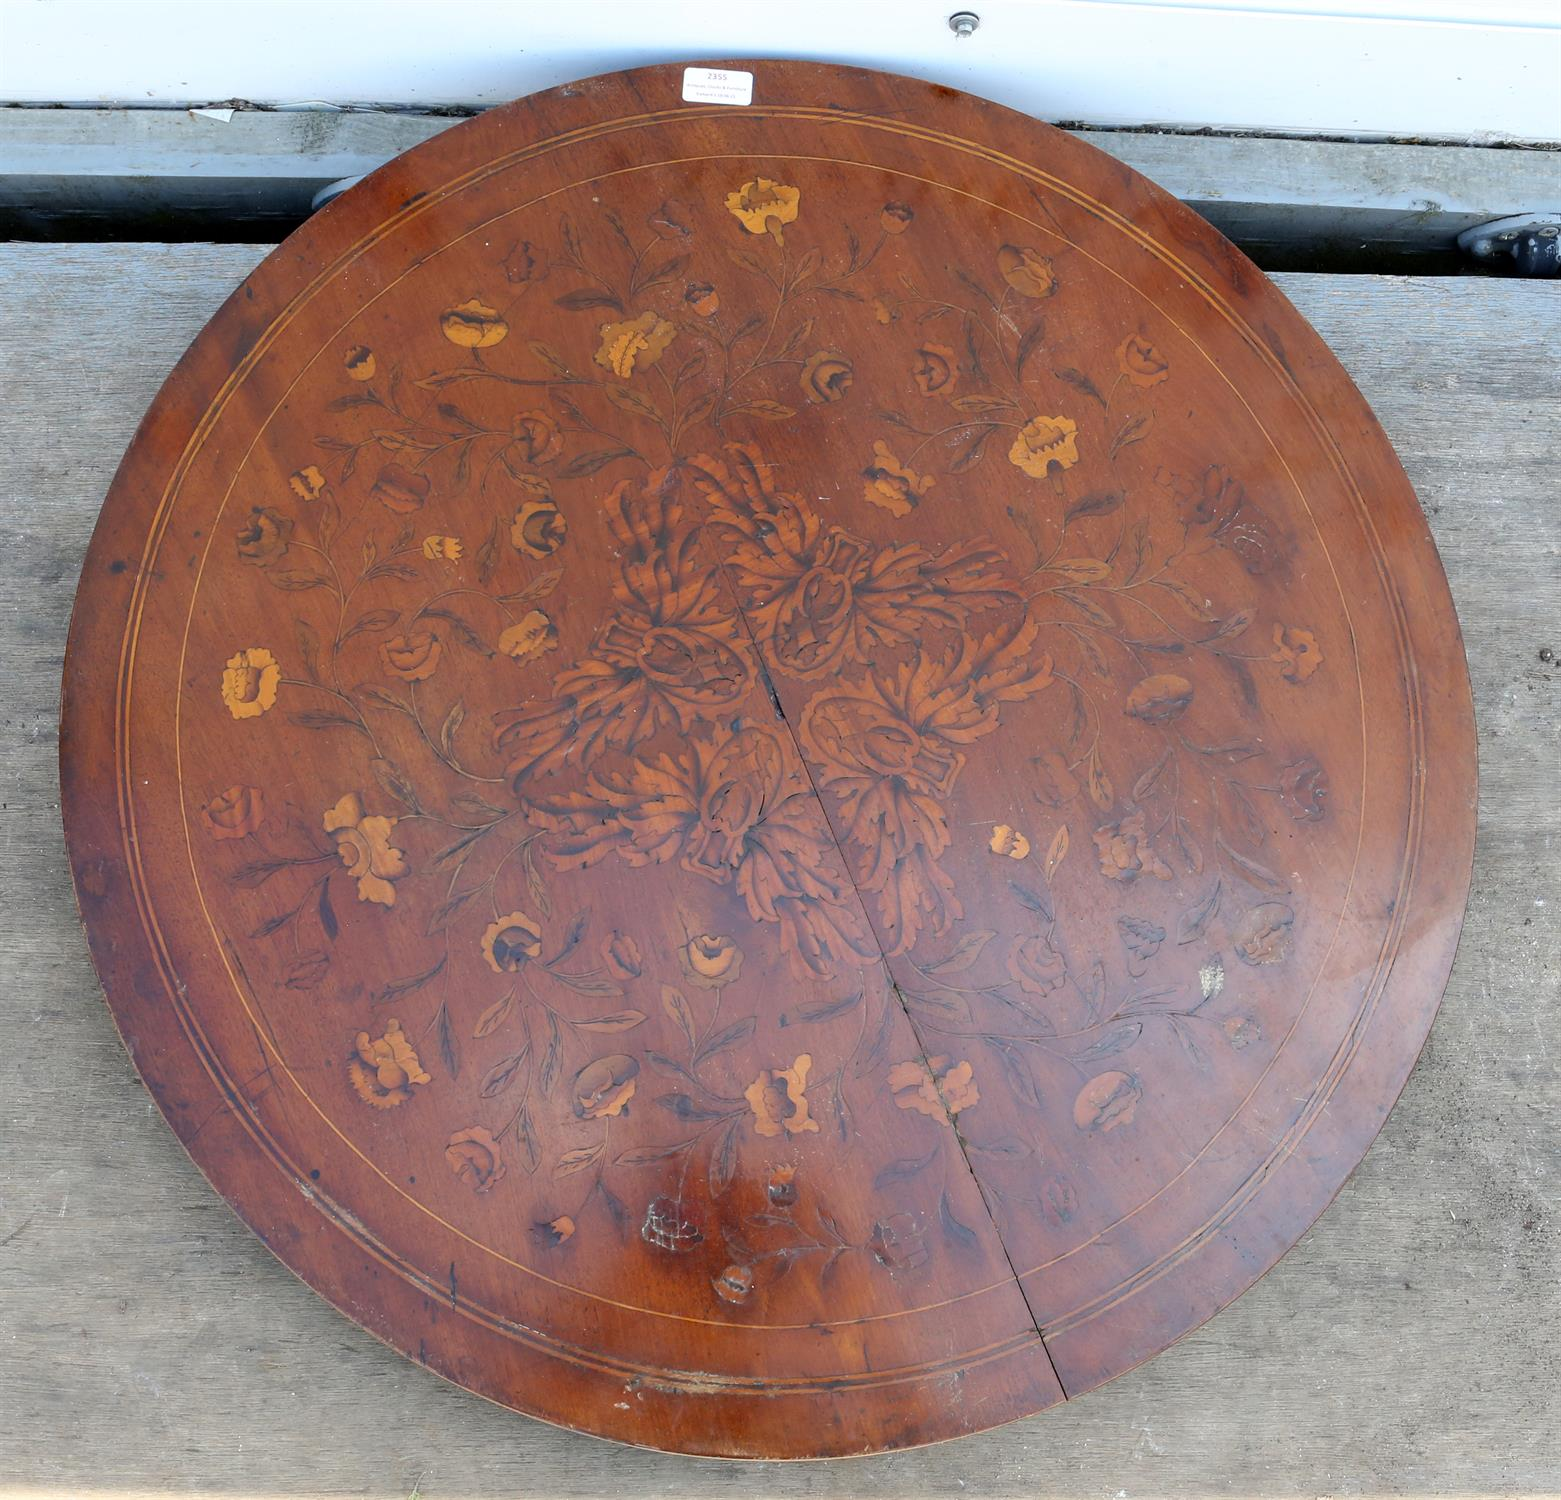 19th century mahogany circular table top, with floral marquetry inlaid decoration, 75cm diameter - Image 2 of 2